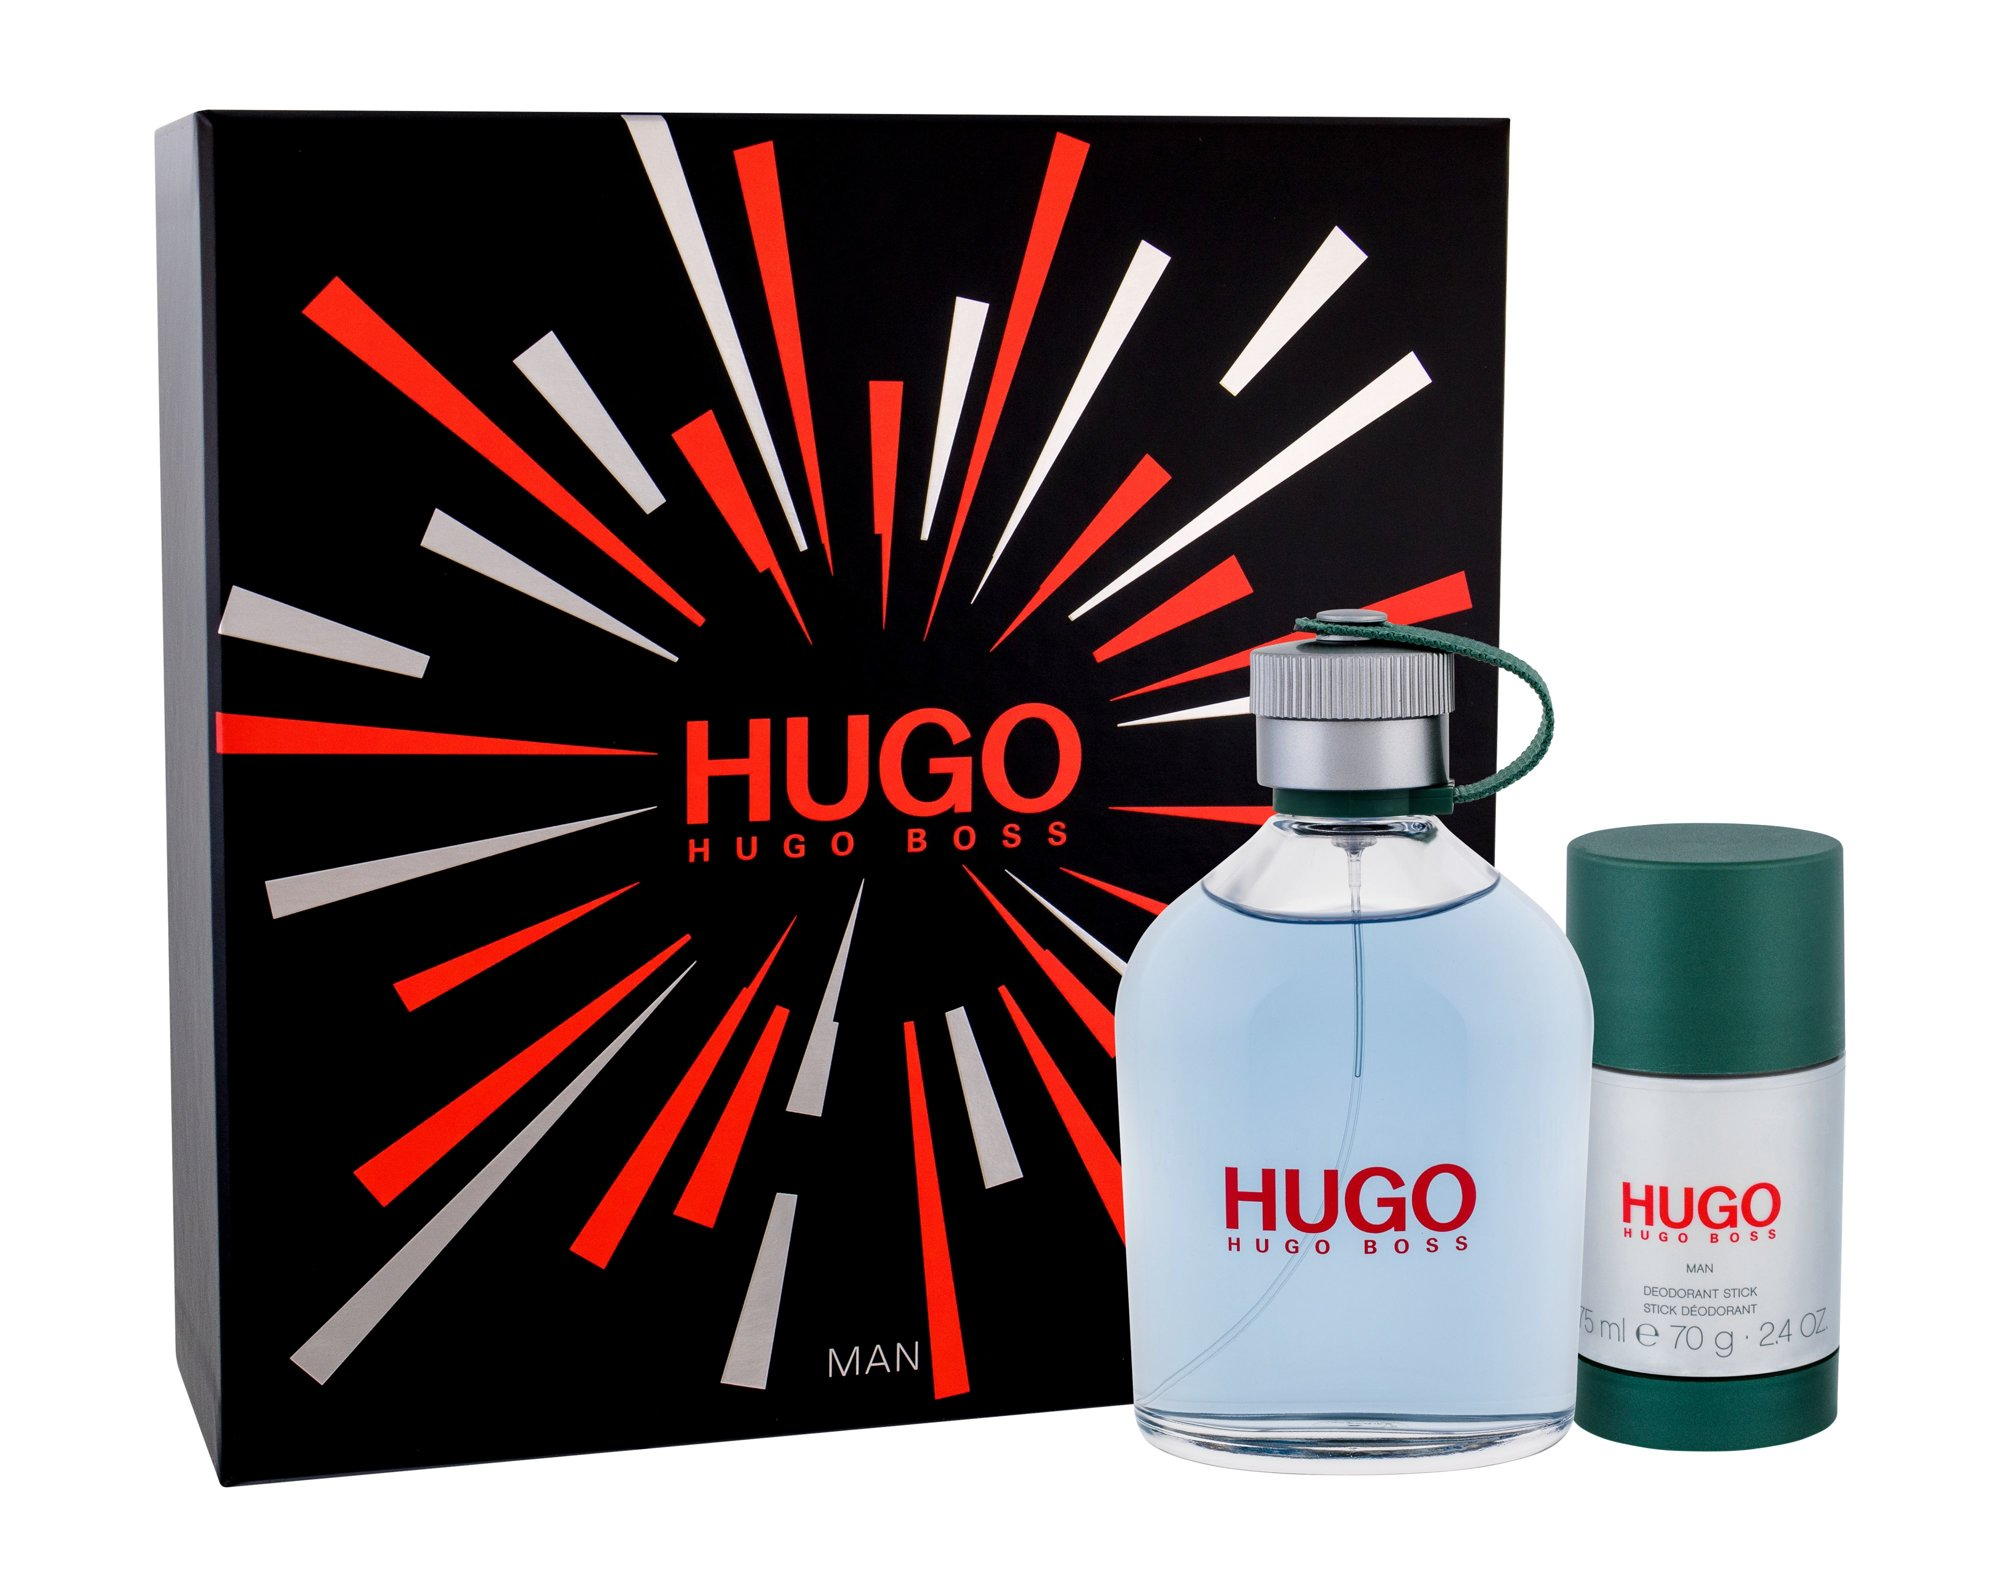 HUGO BOSS Hugo Eau de Toilette 200ml